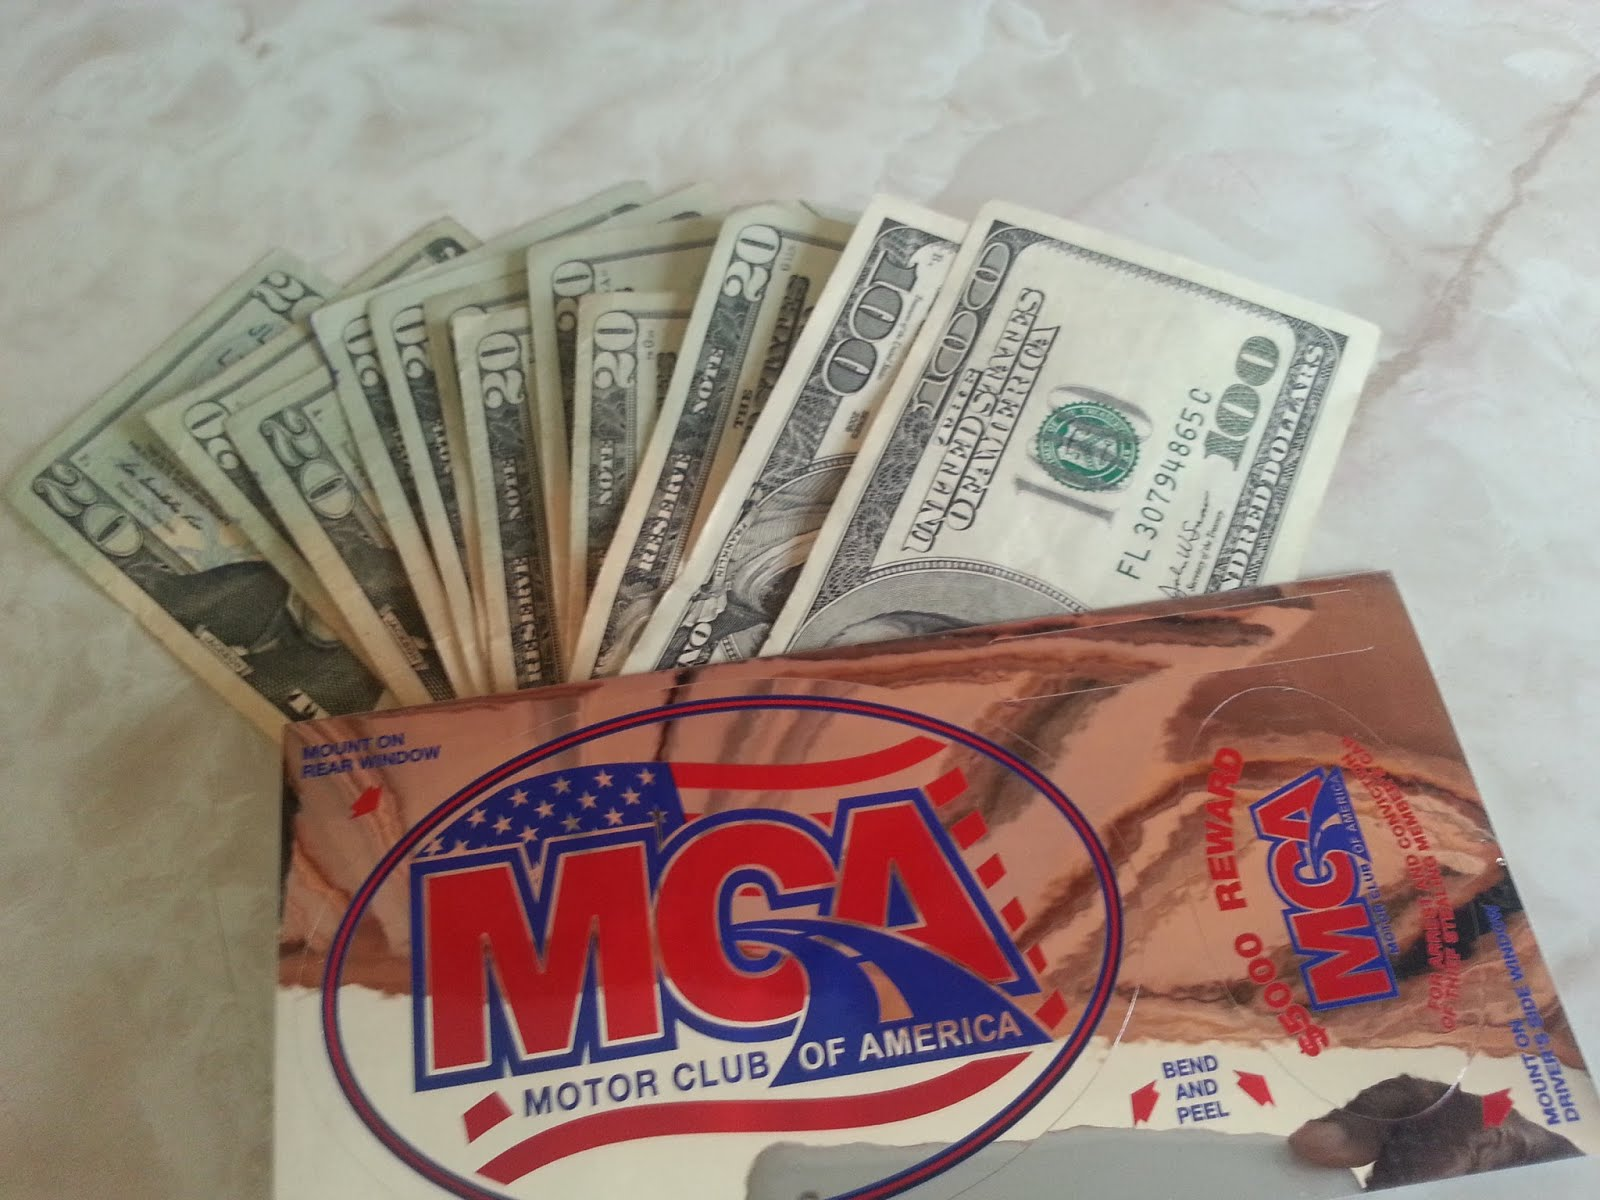 The tatted blogger how to build your mca business e book for Mca motor club of america money